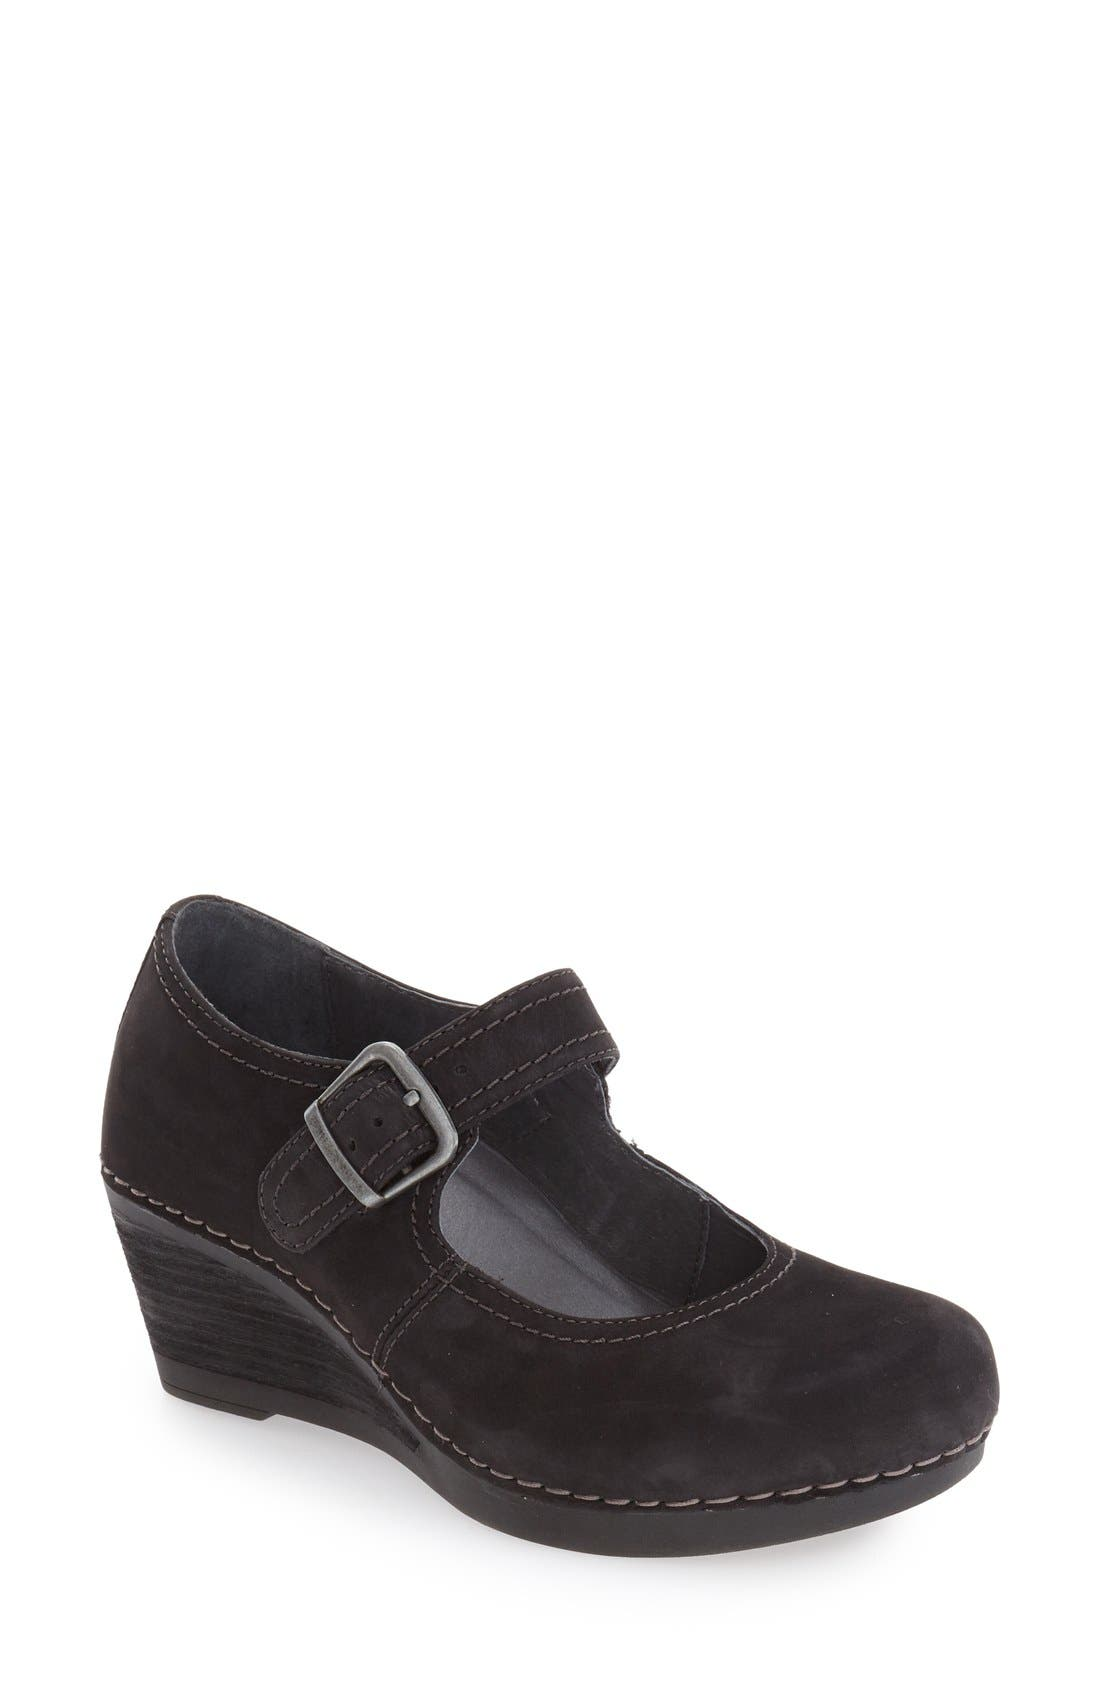 DANSKO 'Sandra' Mary Jane Wedge